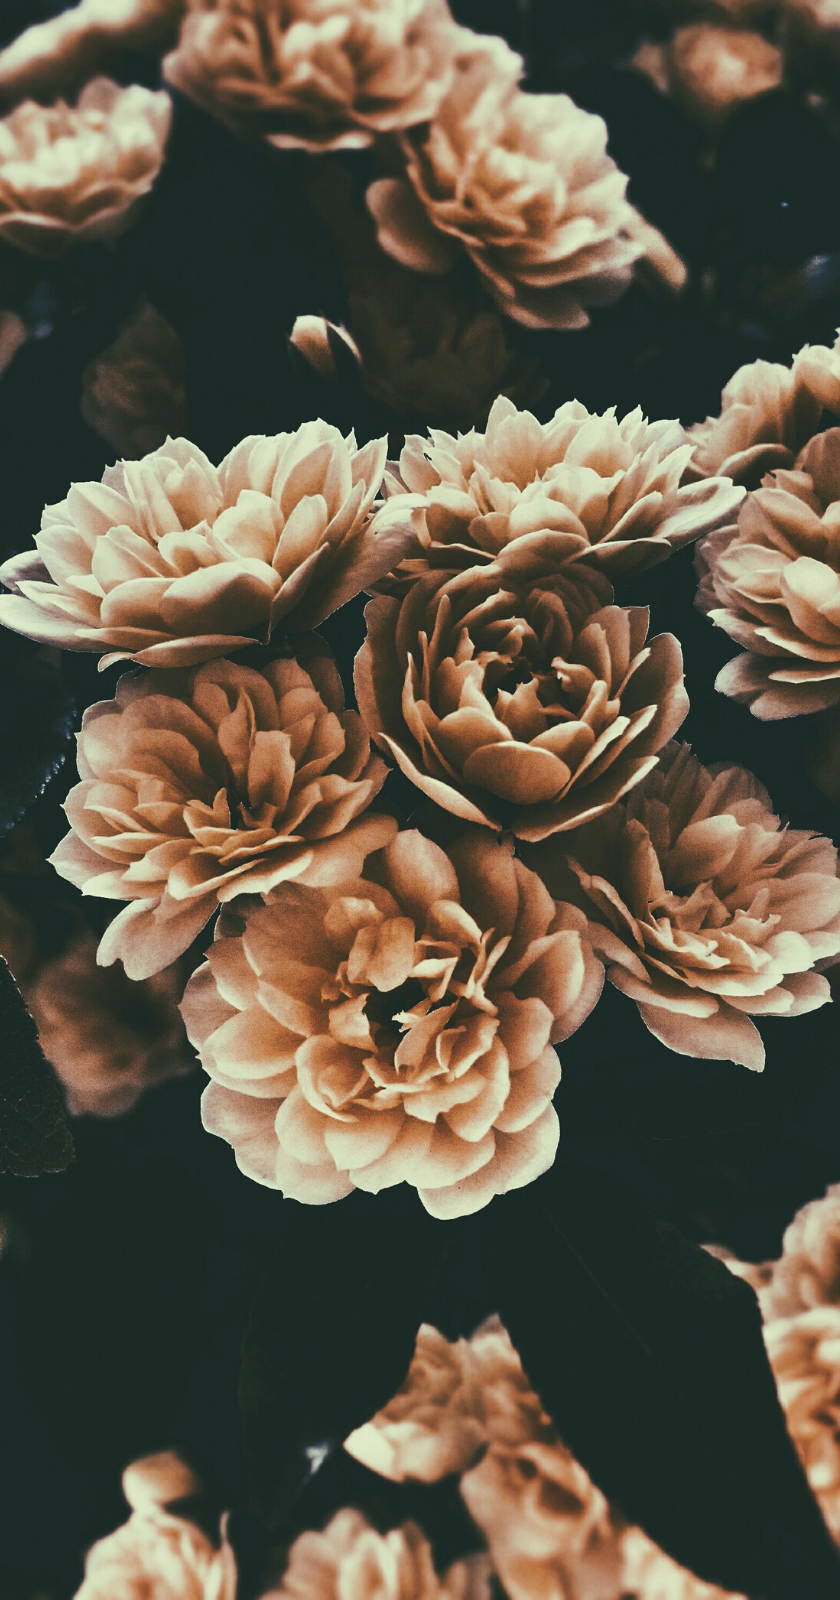 Wallpapers For Iphone 25 Best Floral Wallpapers From Tumblr Floral Tumblr Floral Wallpaper Iphone Wallpaper Blur